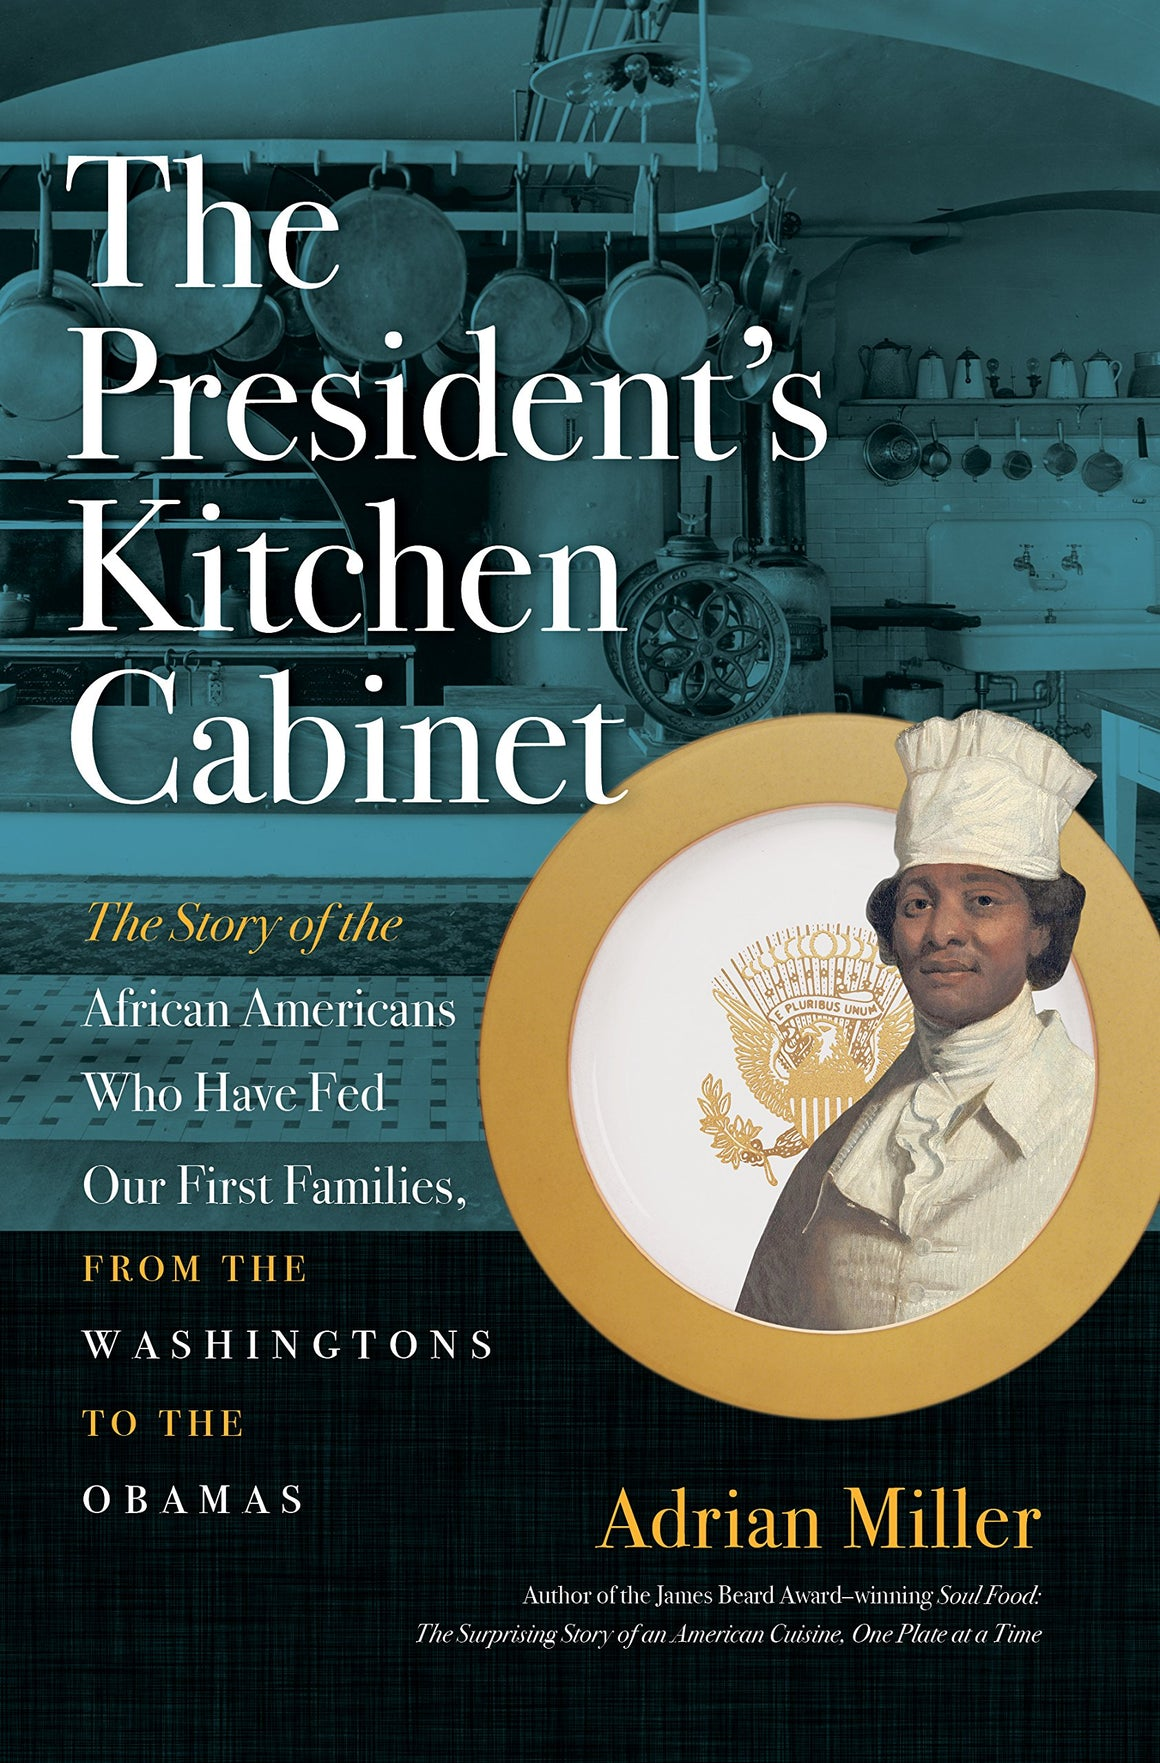 Adrian Miller. The President's Kitchen Cabinet: The Story of the African Americans Who Have Fed Our First Families, from the Washingtons to the Obamas.